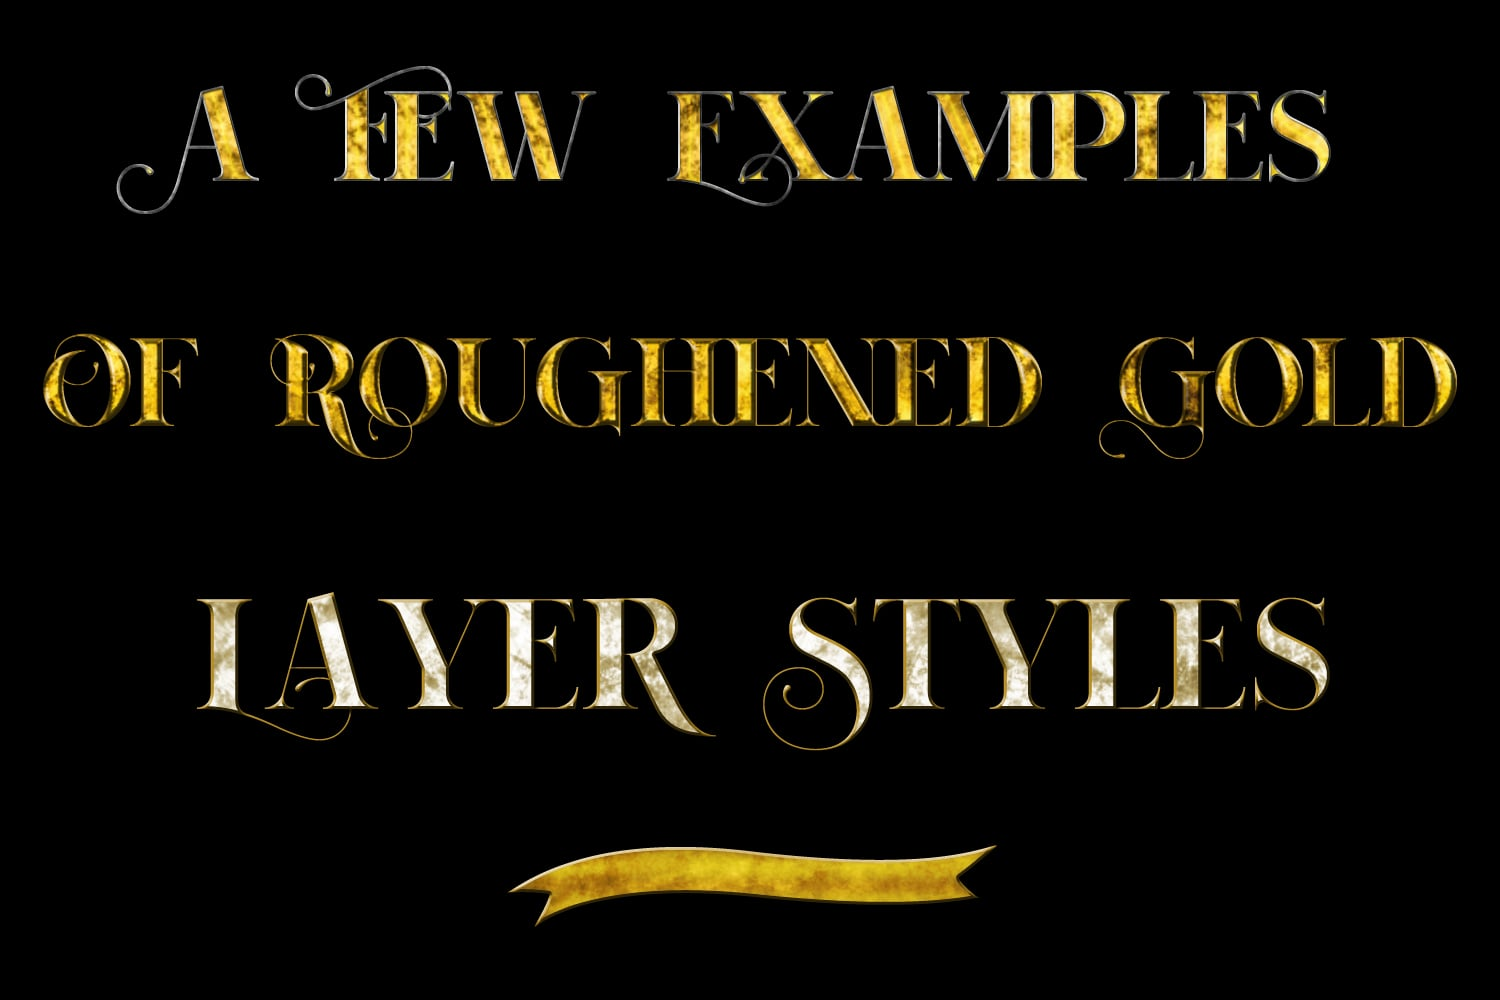 60 Best Photoshop Layer Styles - Gold Metallic, Rose Gold, Silver Metallic - $7 - 662ee22ad93759ac27a38ee8299b2d23 resize